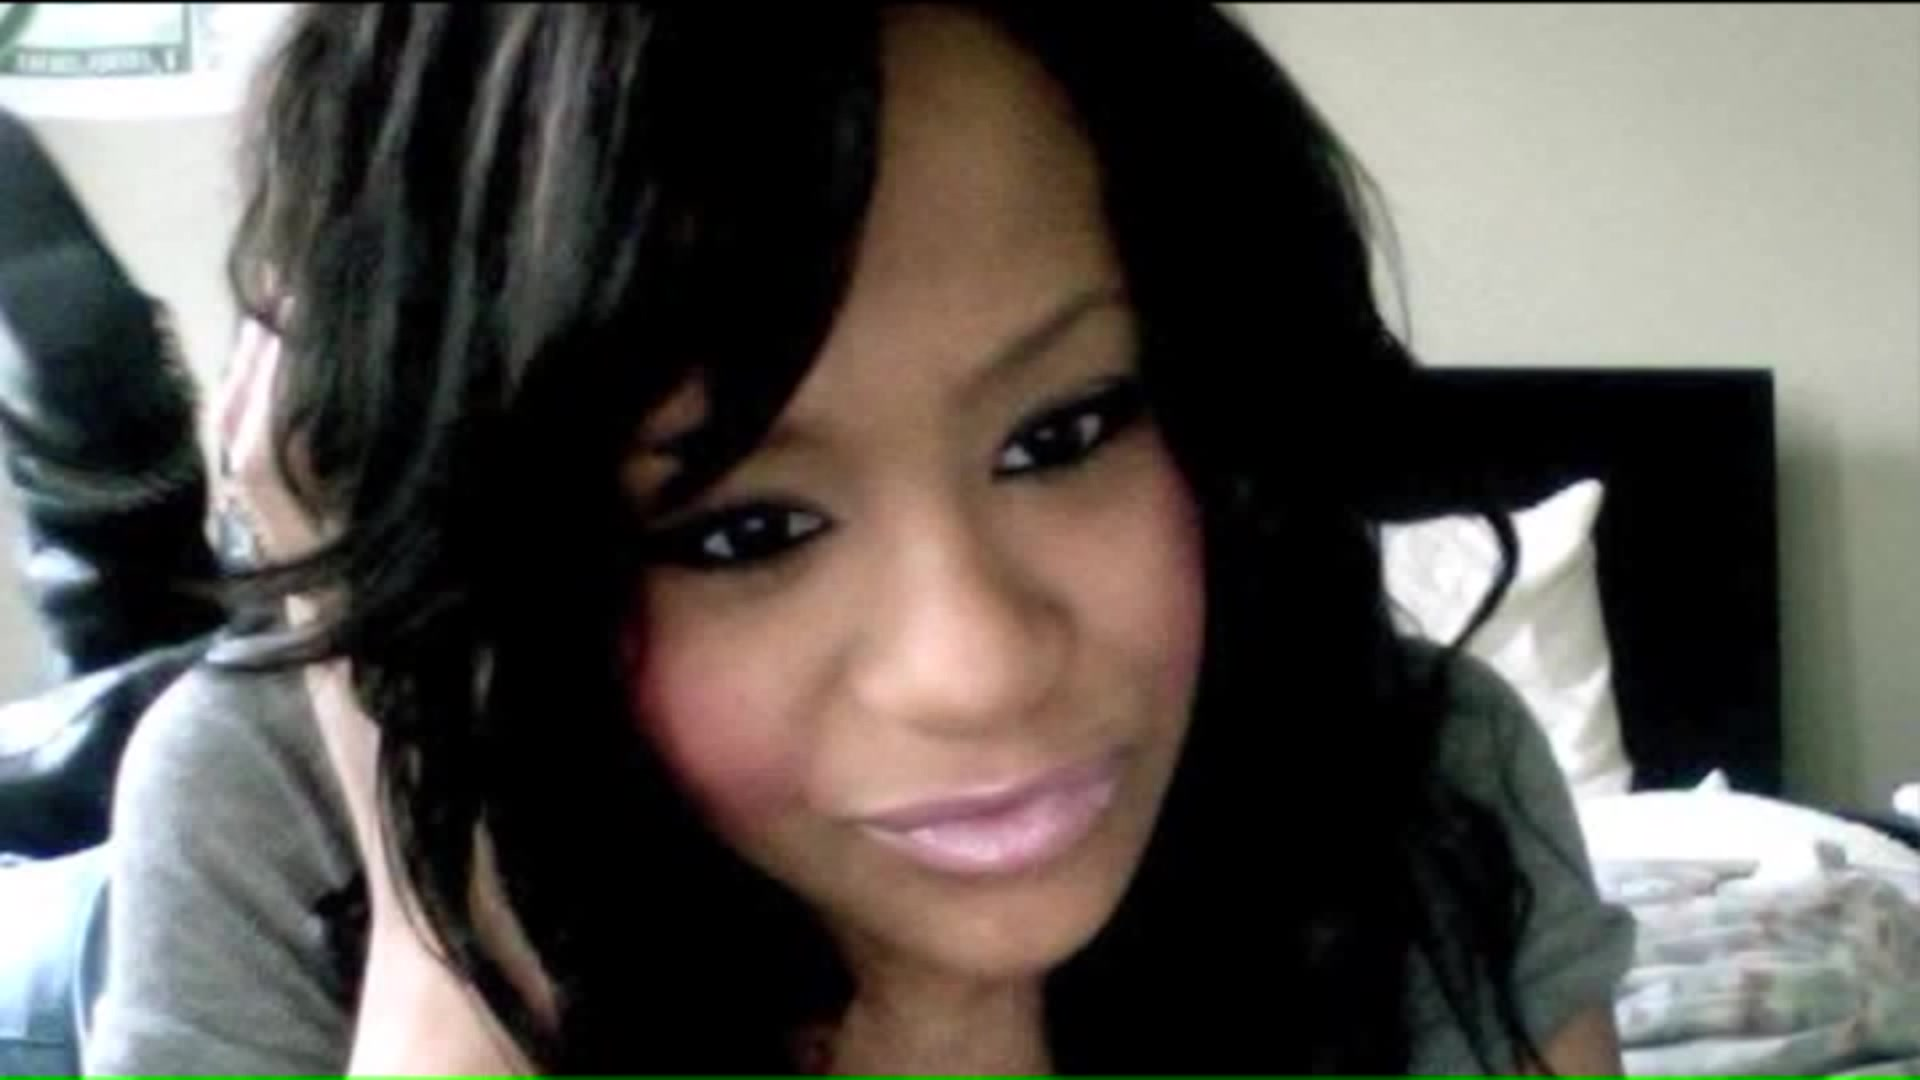 Initial Autopsy On Bobbi Kristina Brown Finds No Obvious Cause of Death